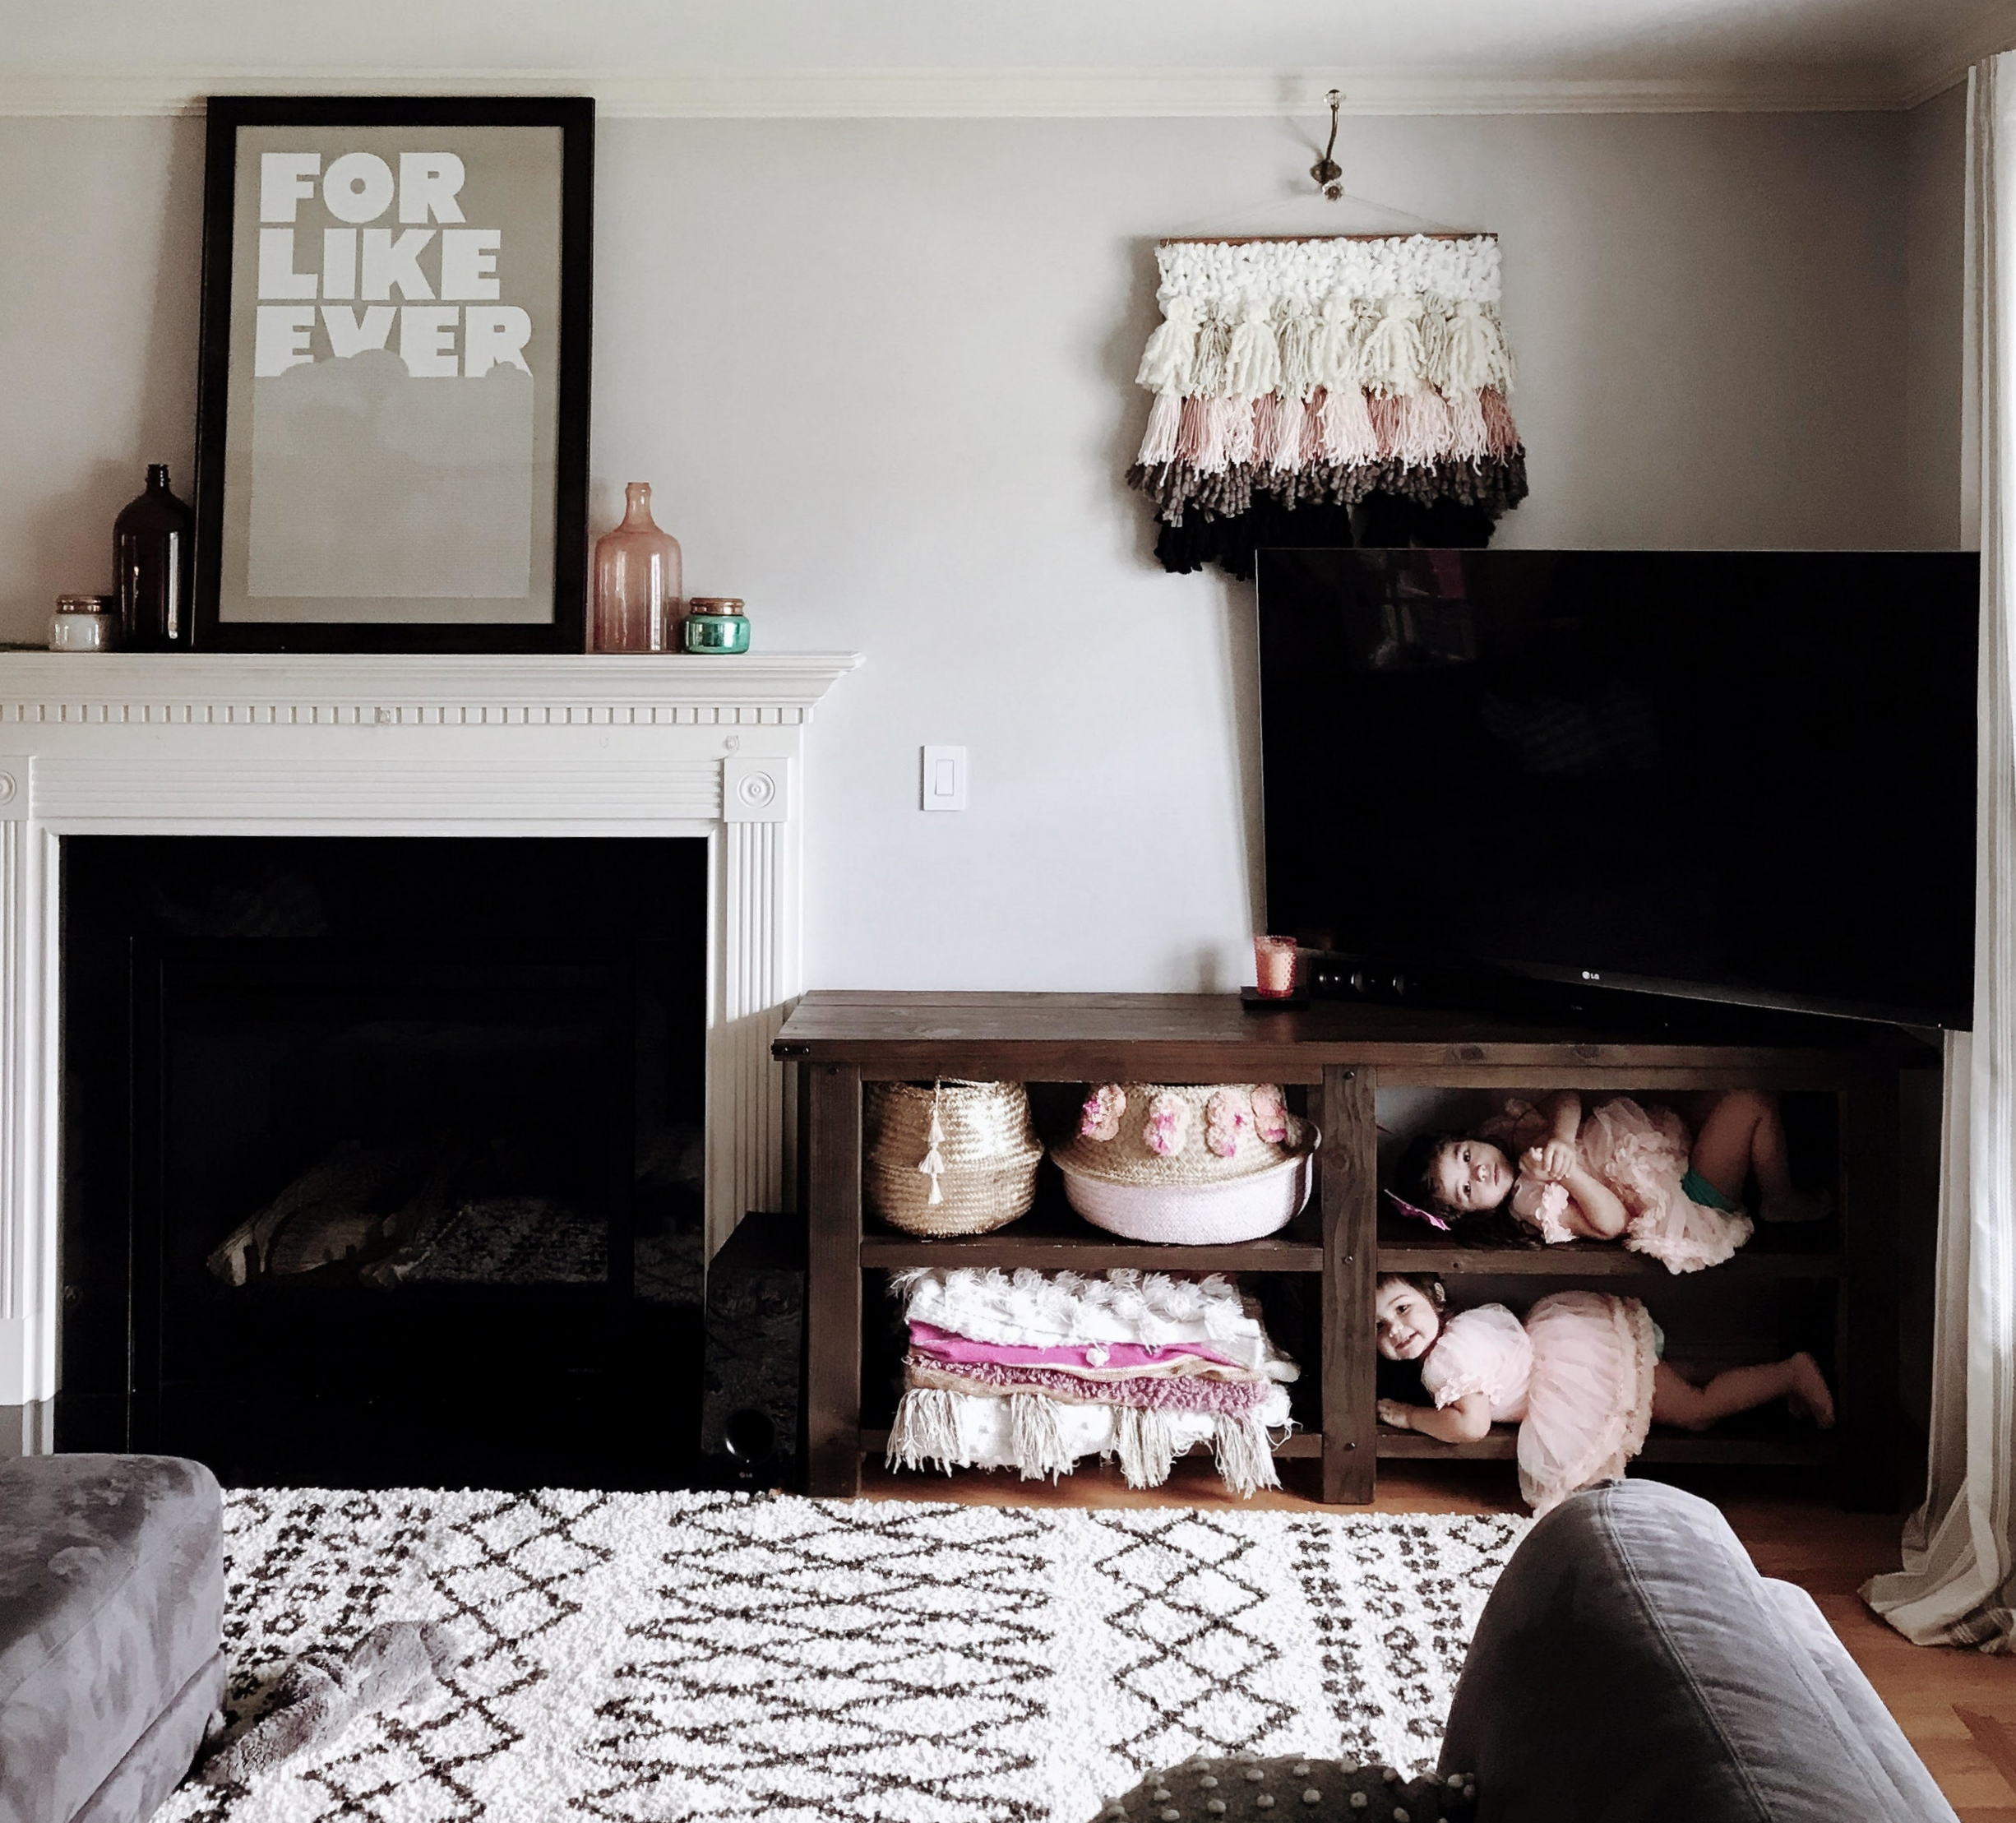 diy faux weaving wall art the ever co amy lou hawthorne craft anthropologie interior design anthro home